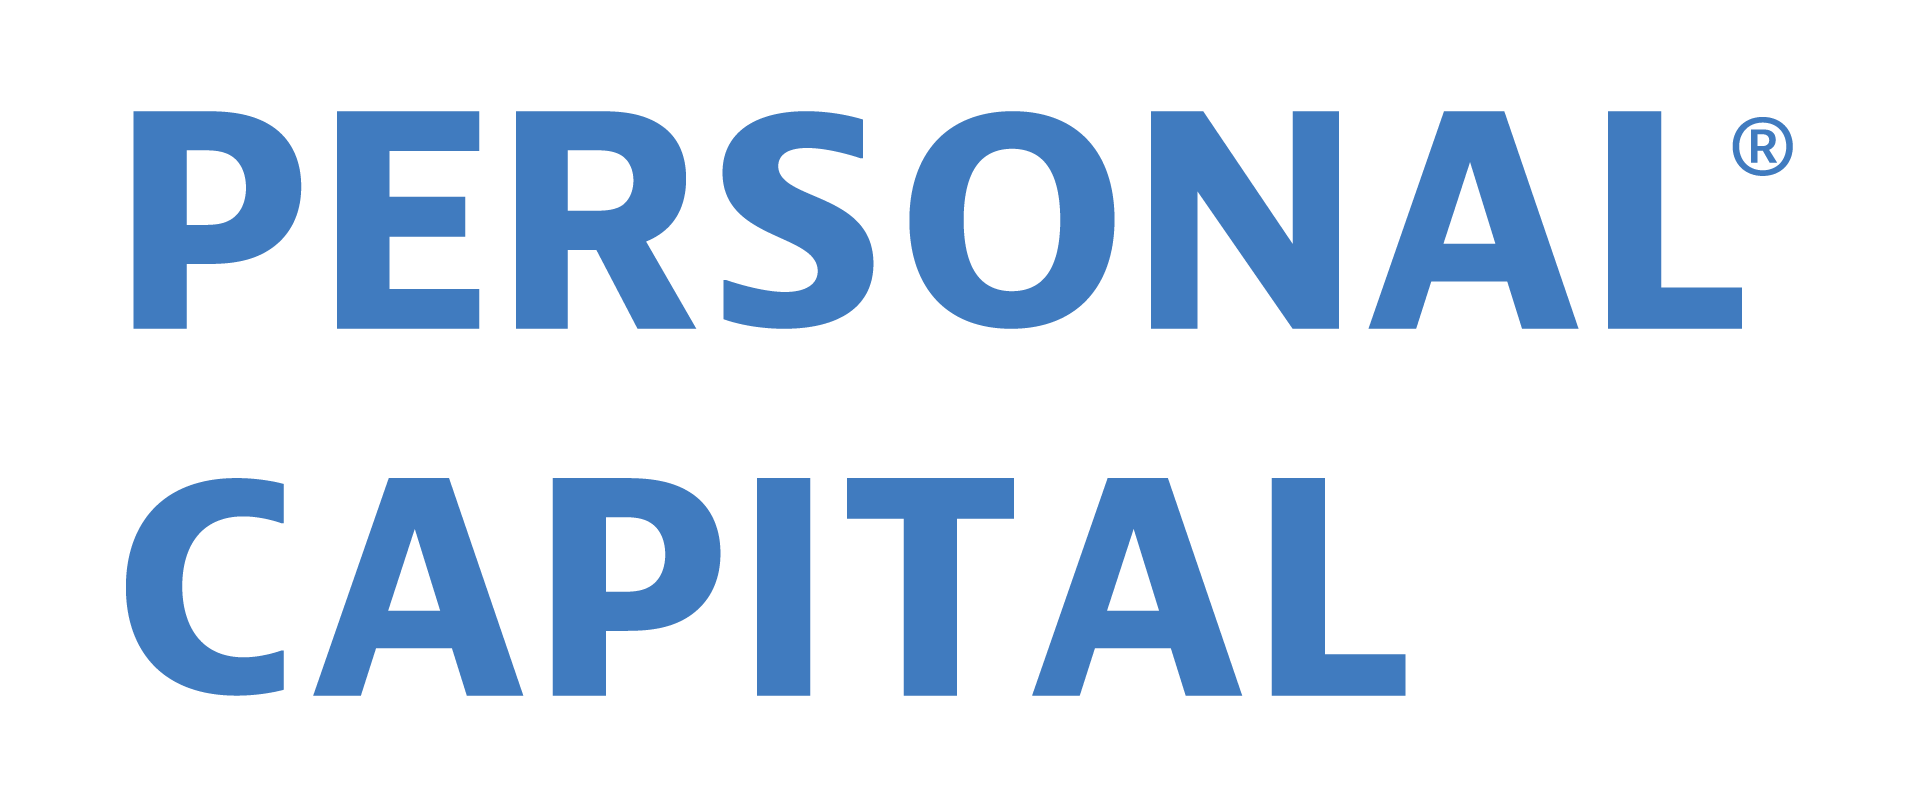 Personal Capital - The Best Free Personal Finance Software - One